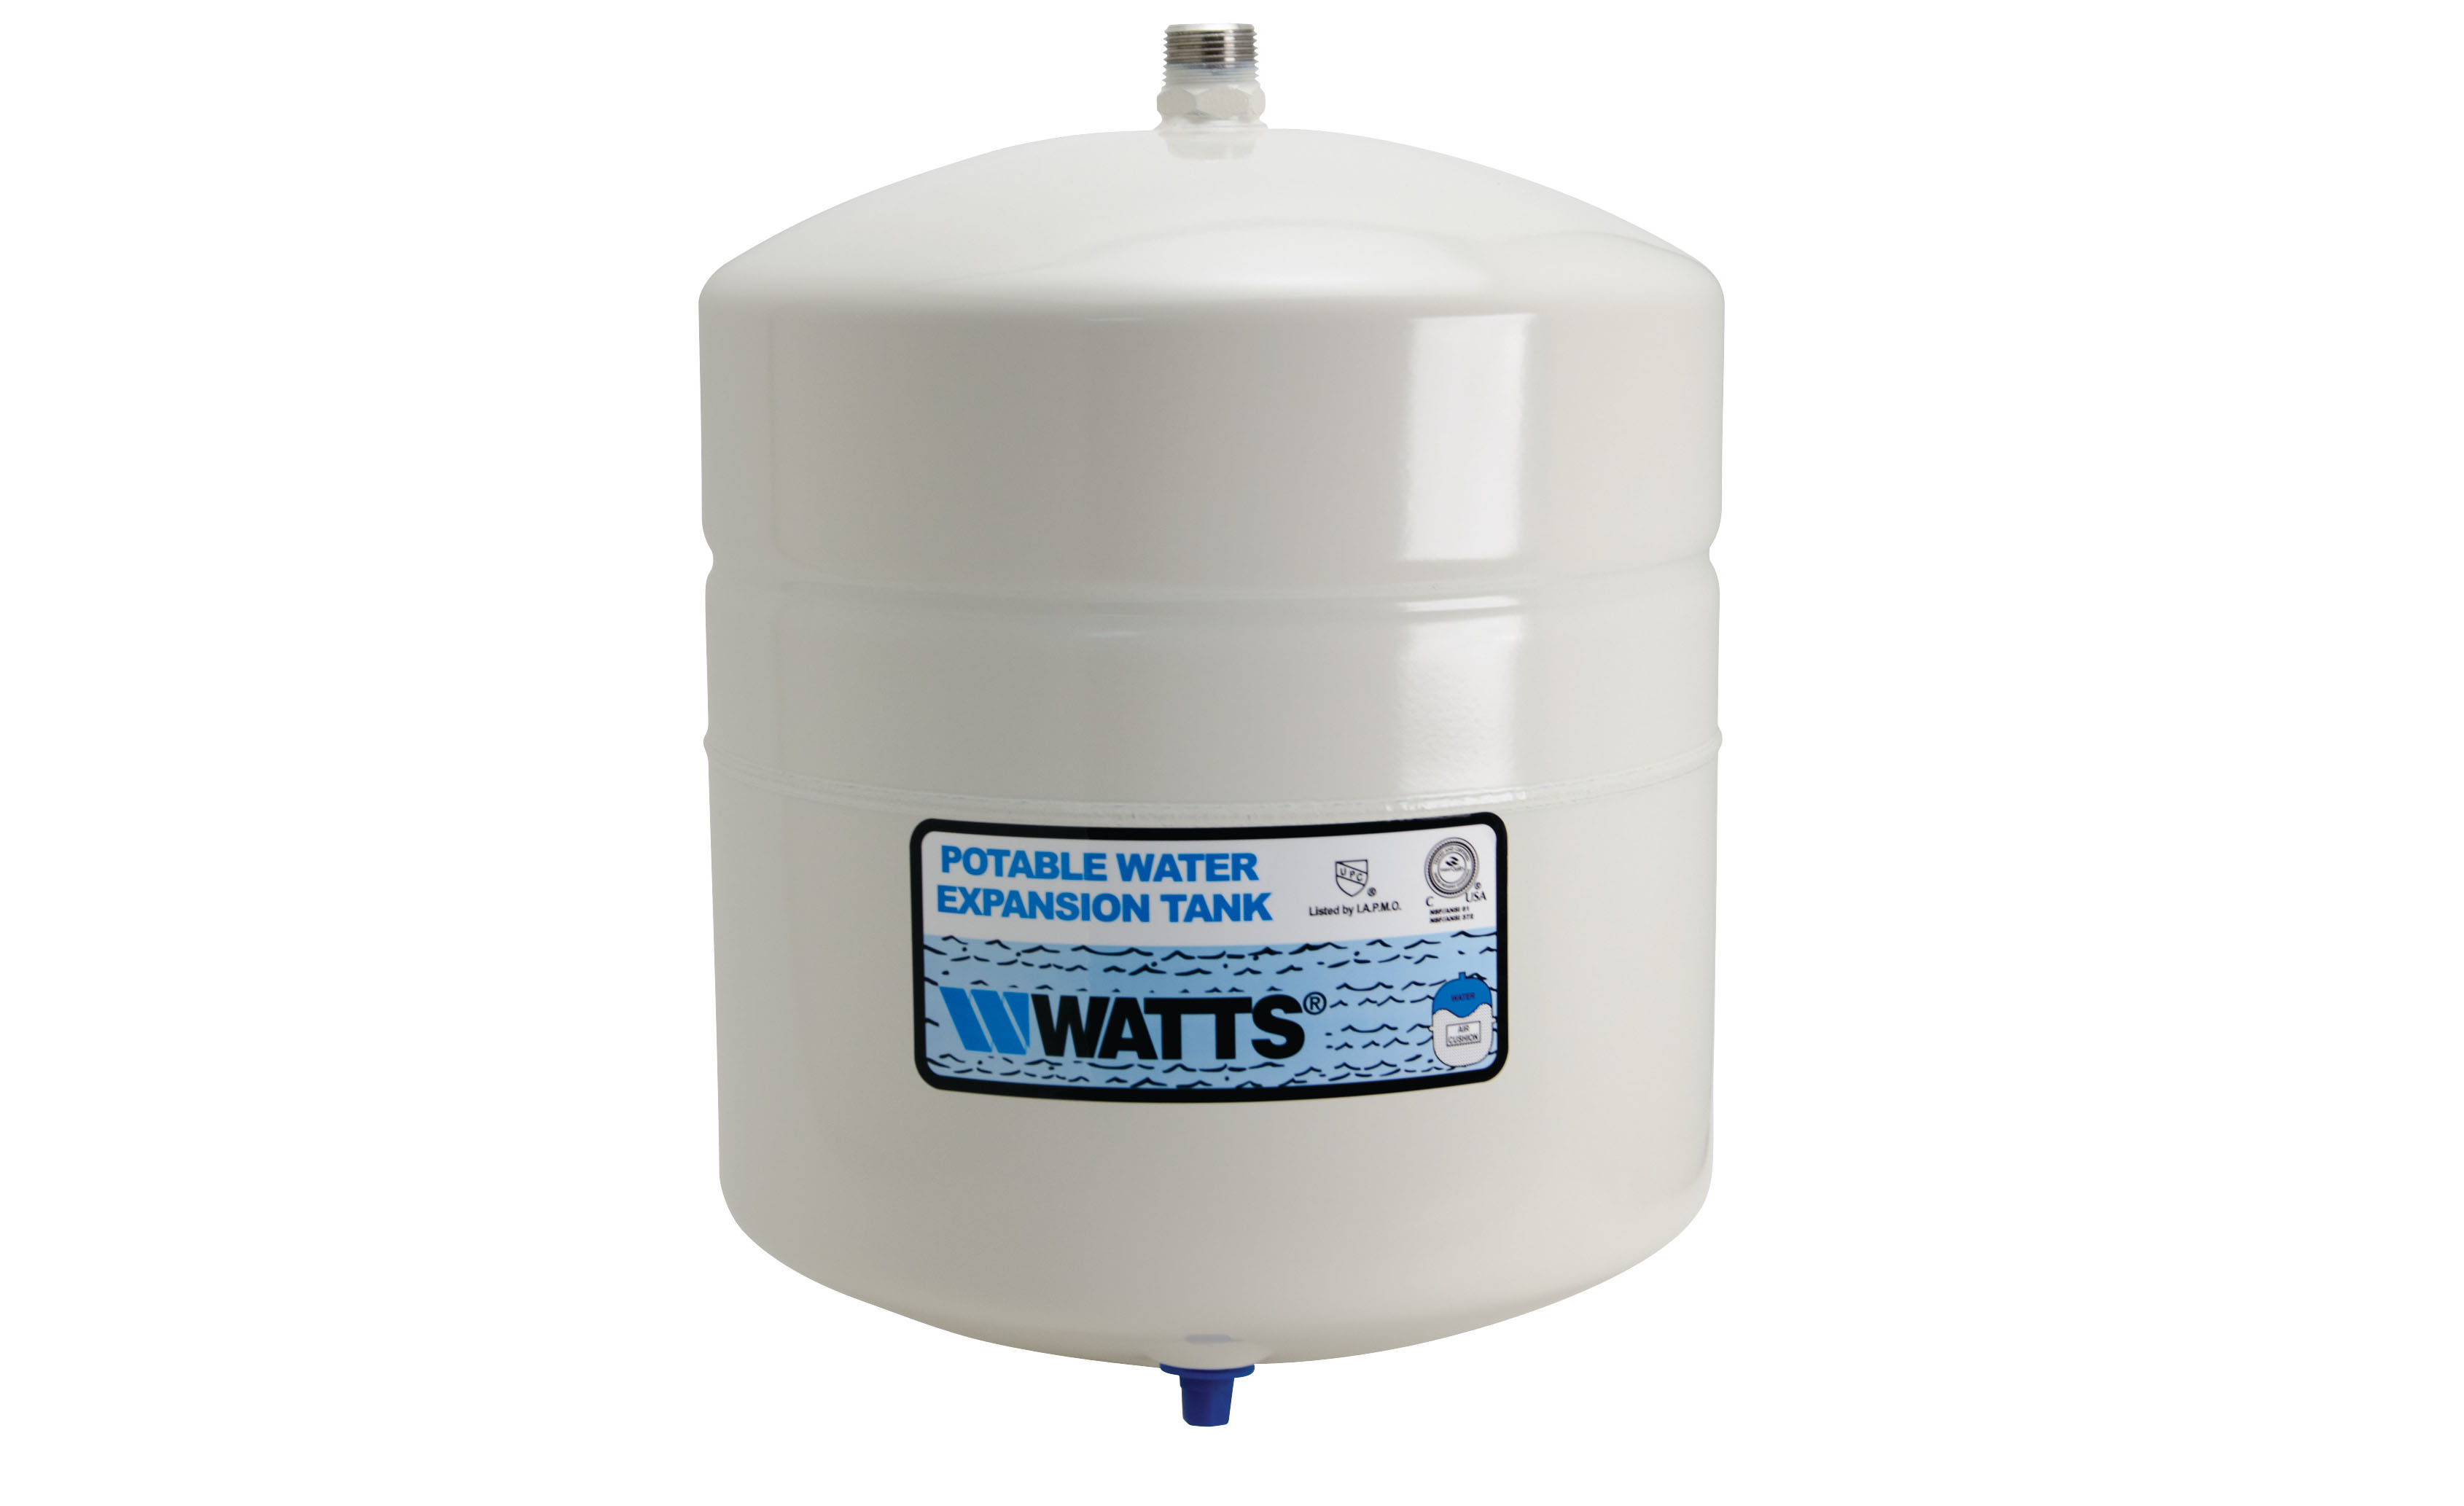 WATTS EXPANSION TANKS